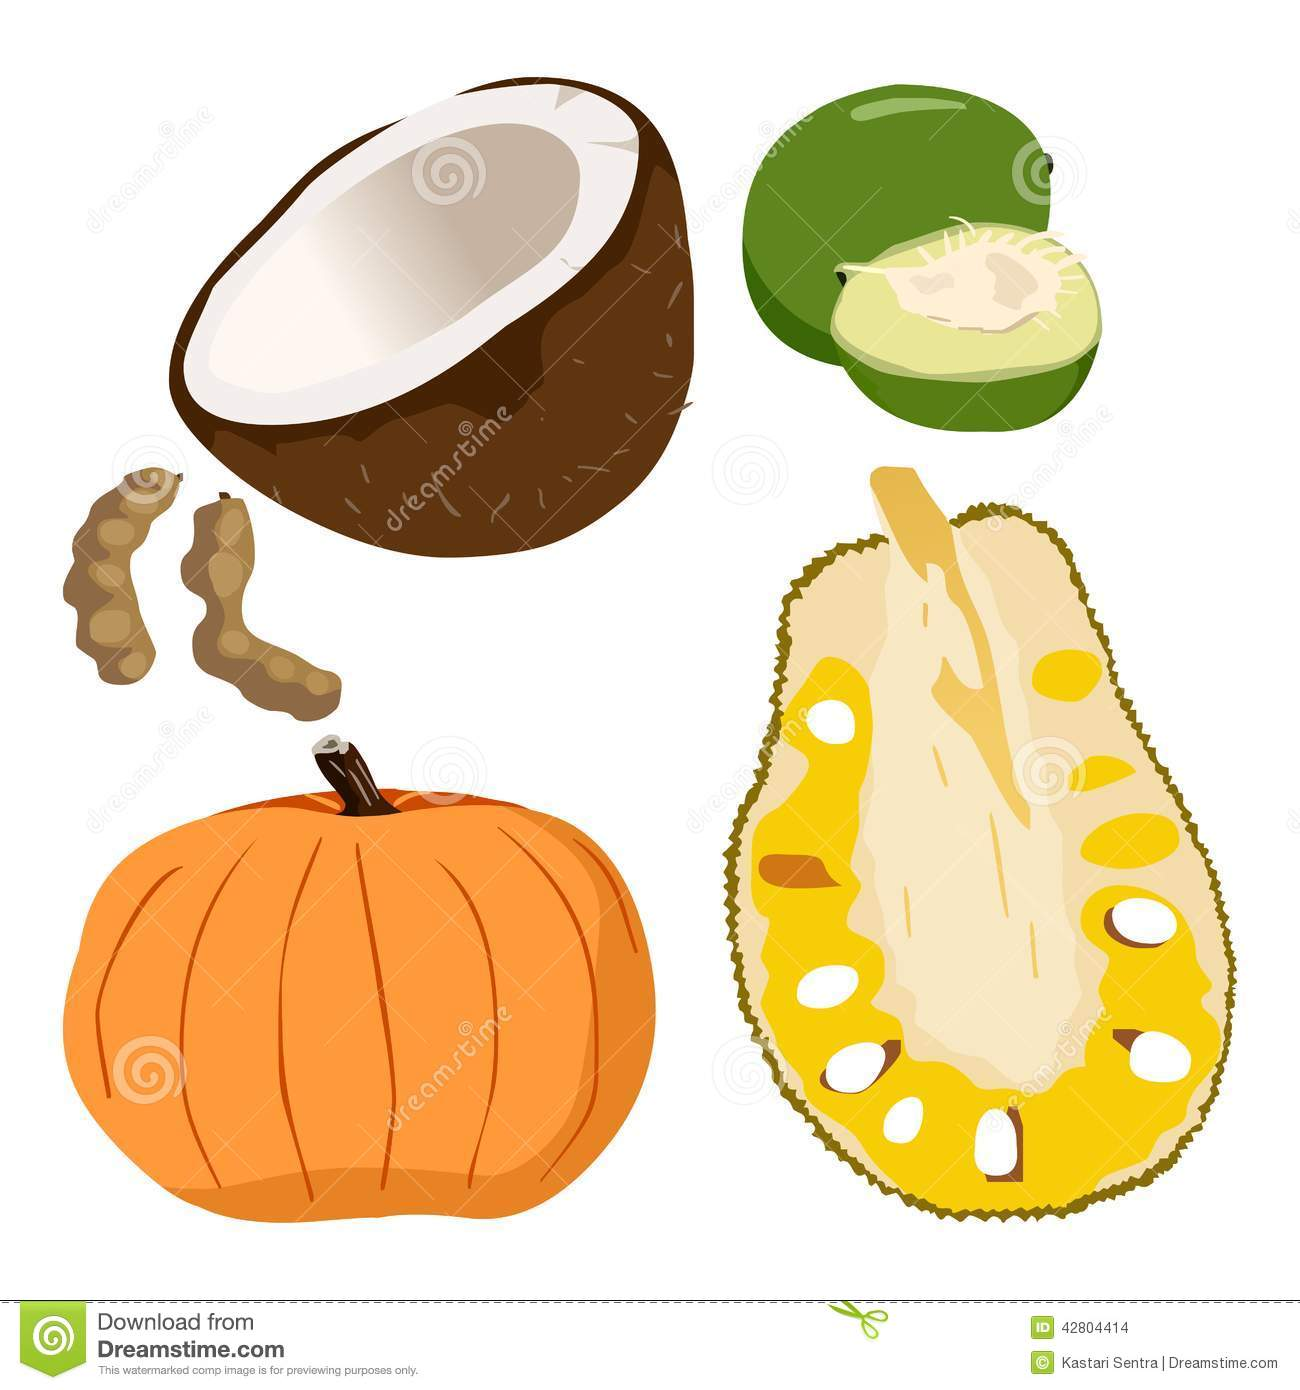 Caimito, Coconut, Pumpkin, Tamarindus indica, Jackfruit - Illustration